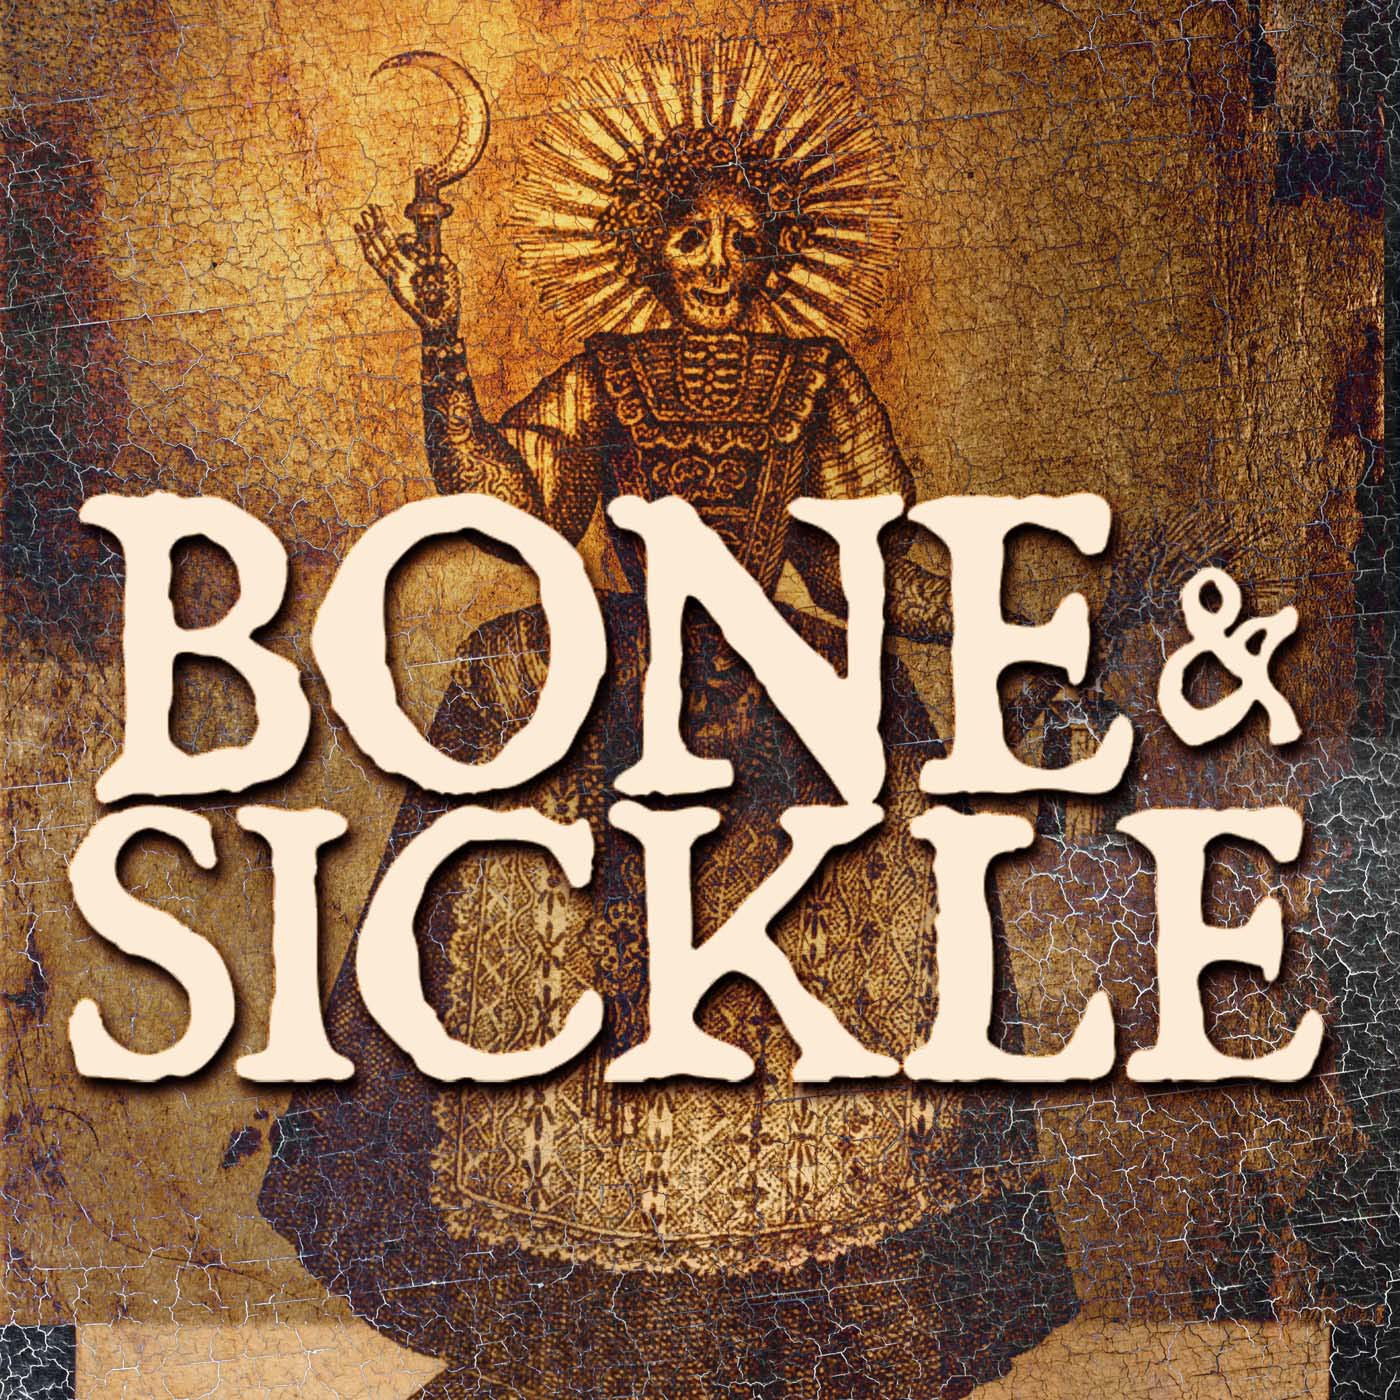 Bone and Sickle